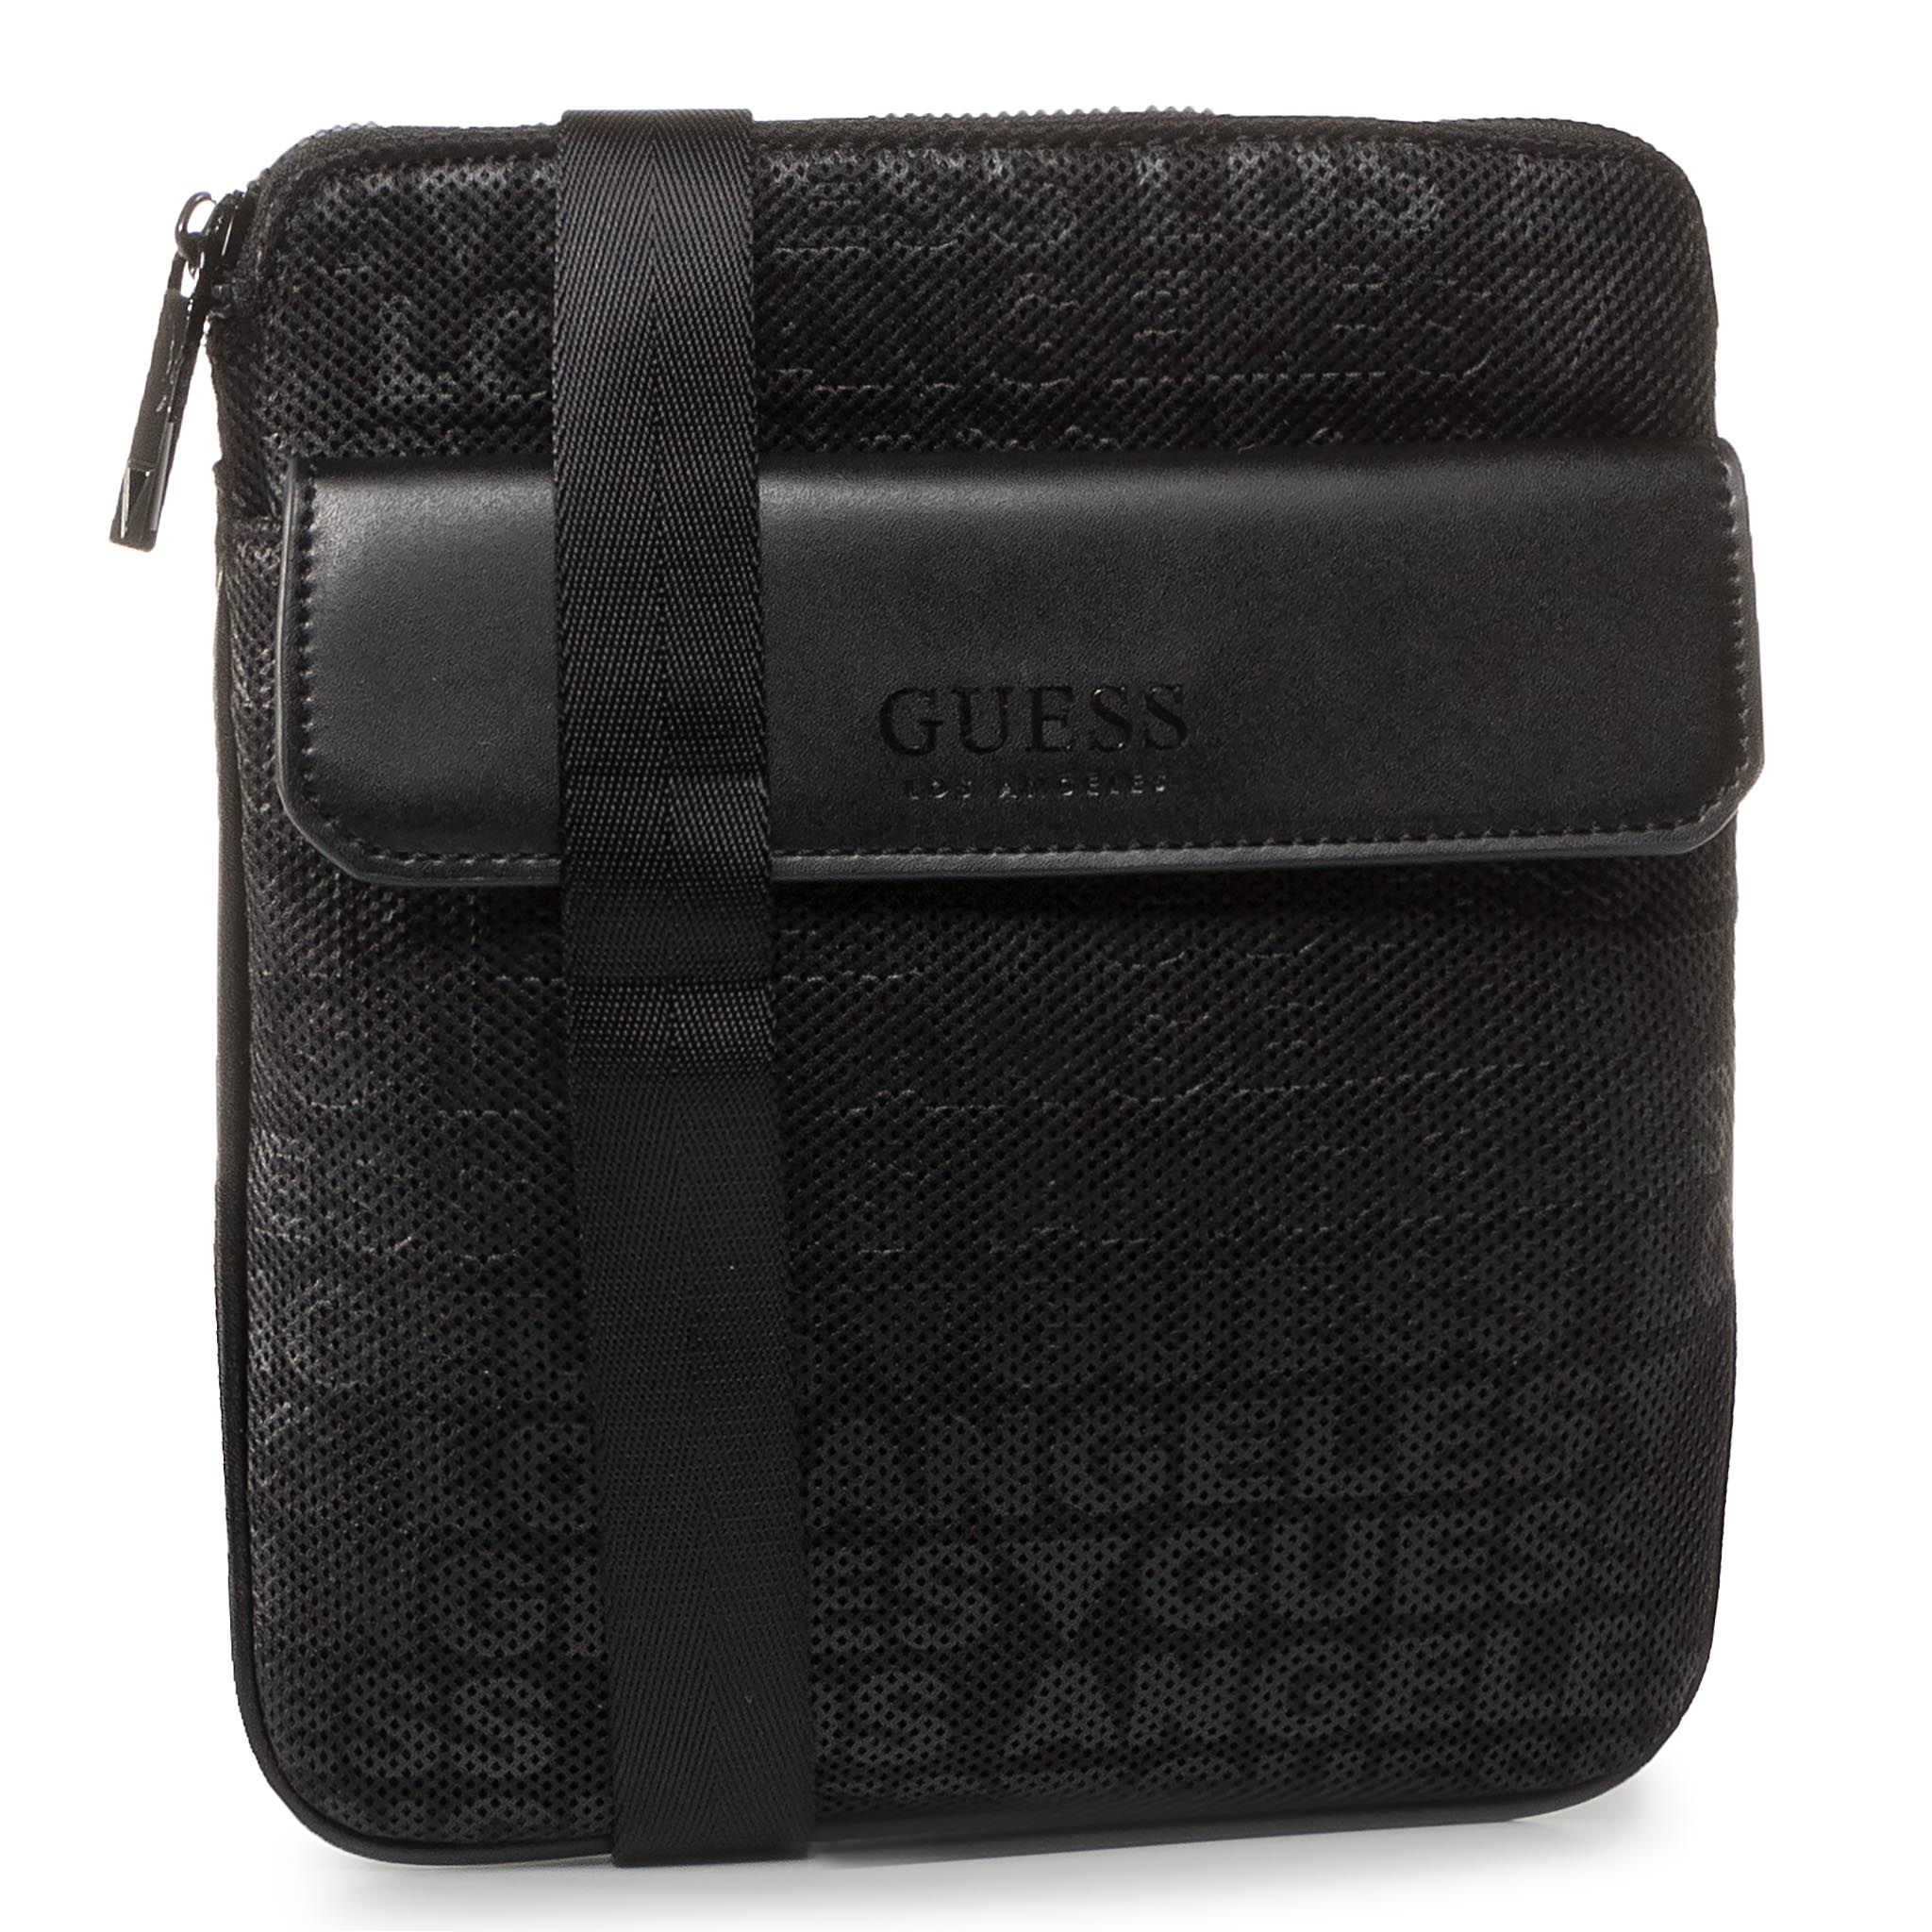 Geantă Crossover Guess - New Milano Tech Hmnemt P0227 Bla imagine